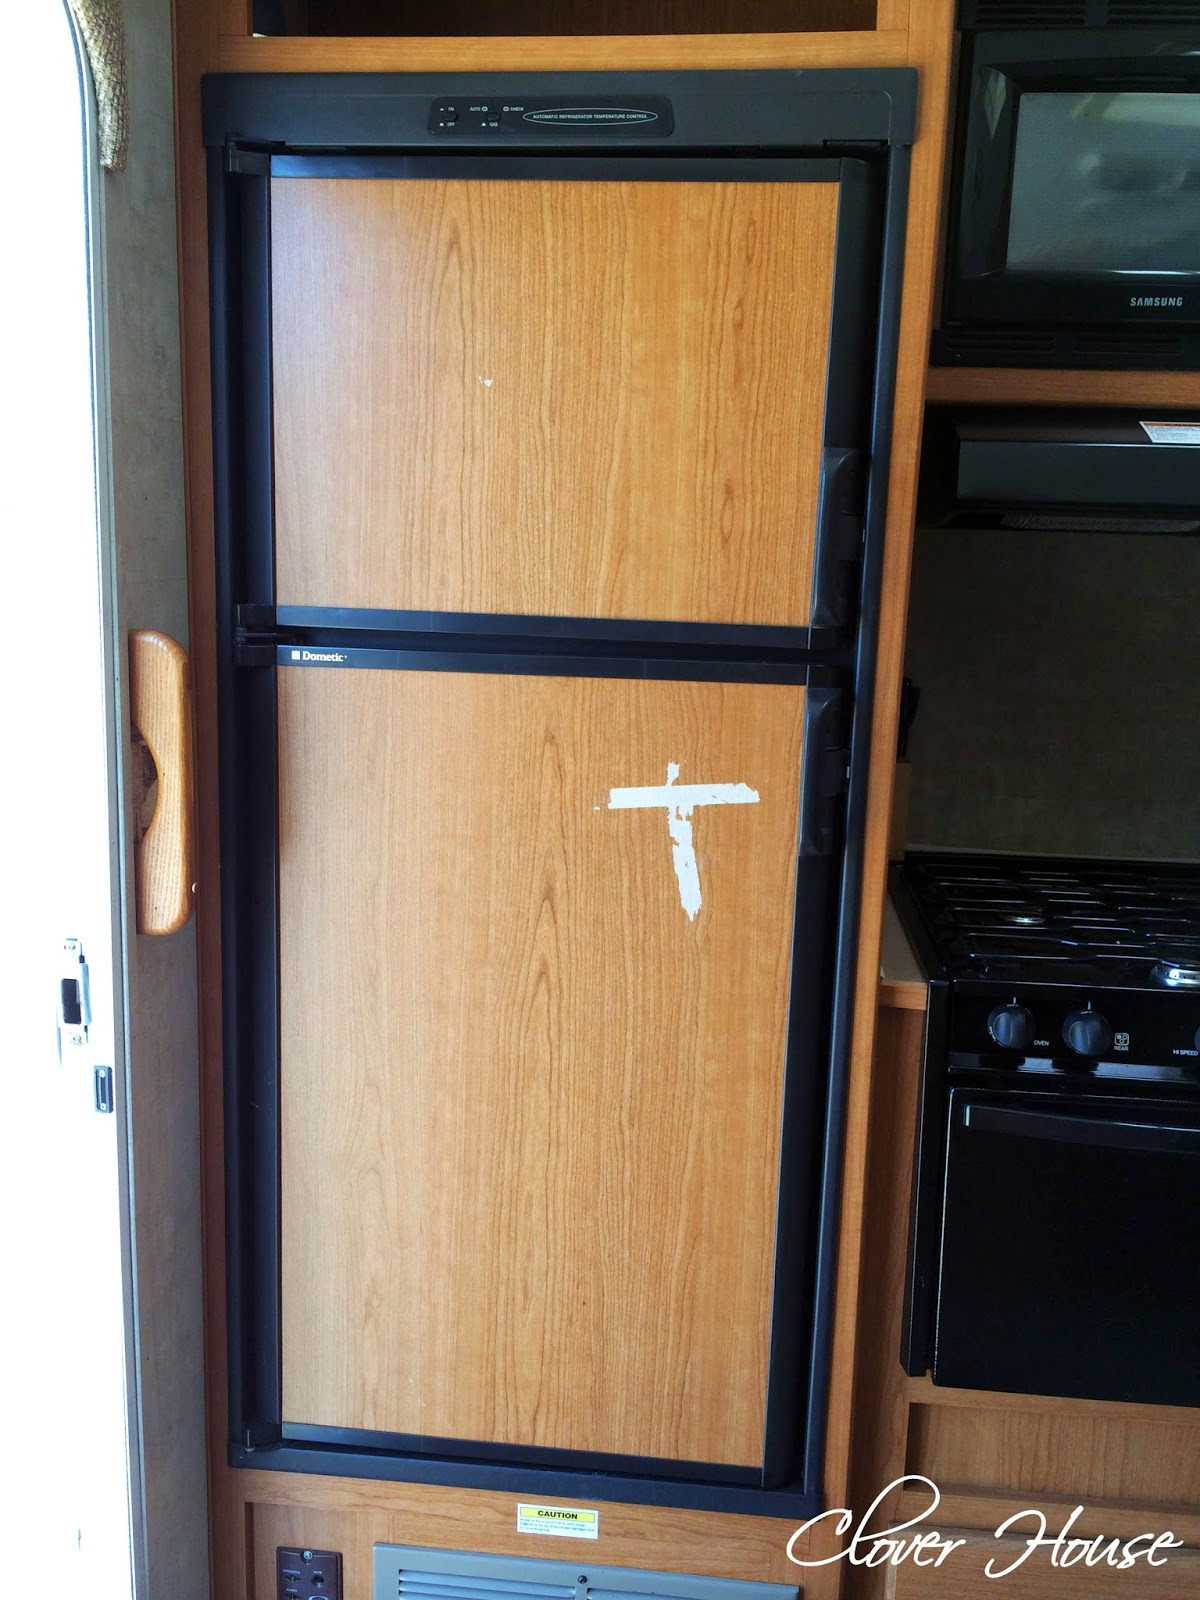 Clover House Rv Fridge Makeover With Chalk Paint